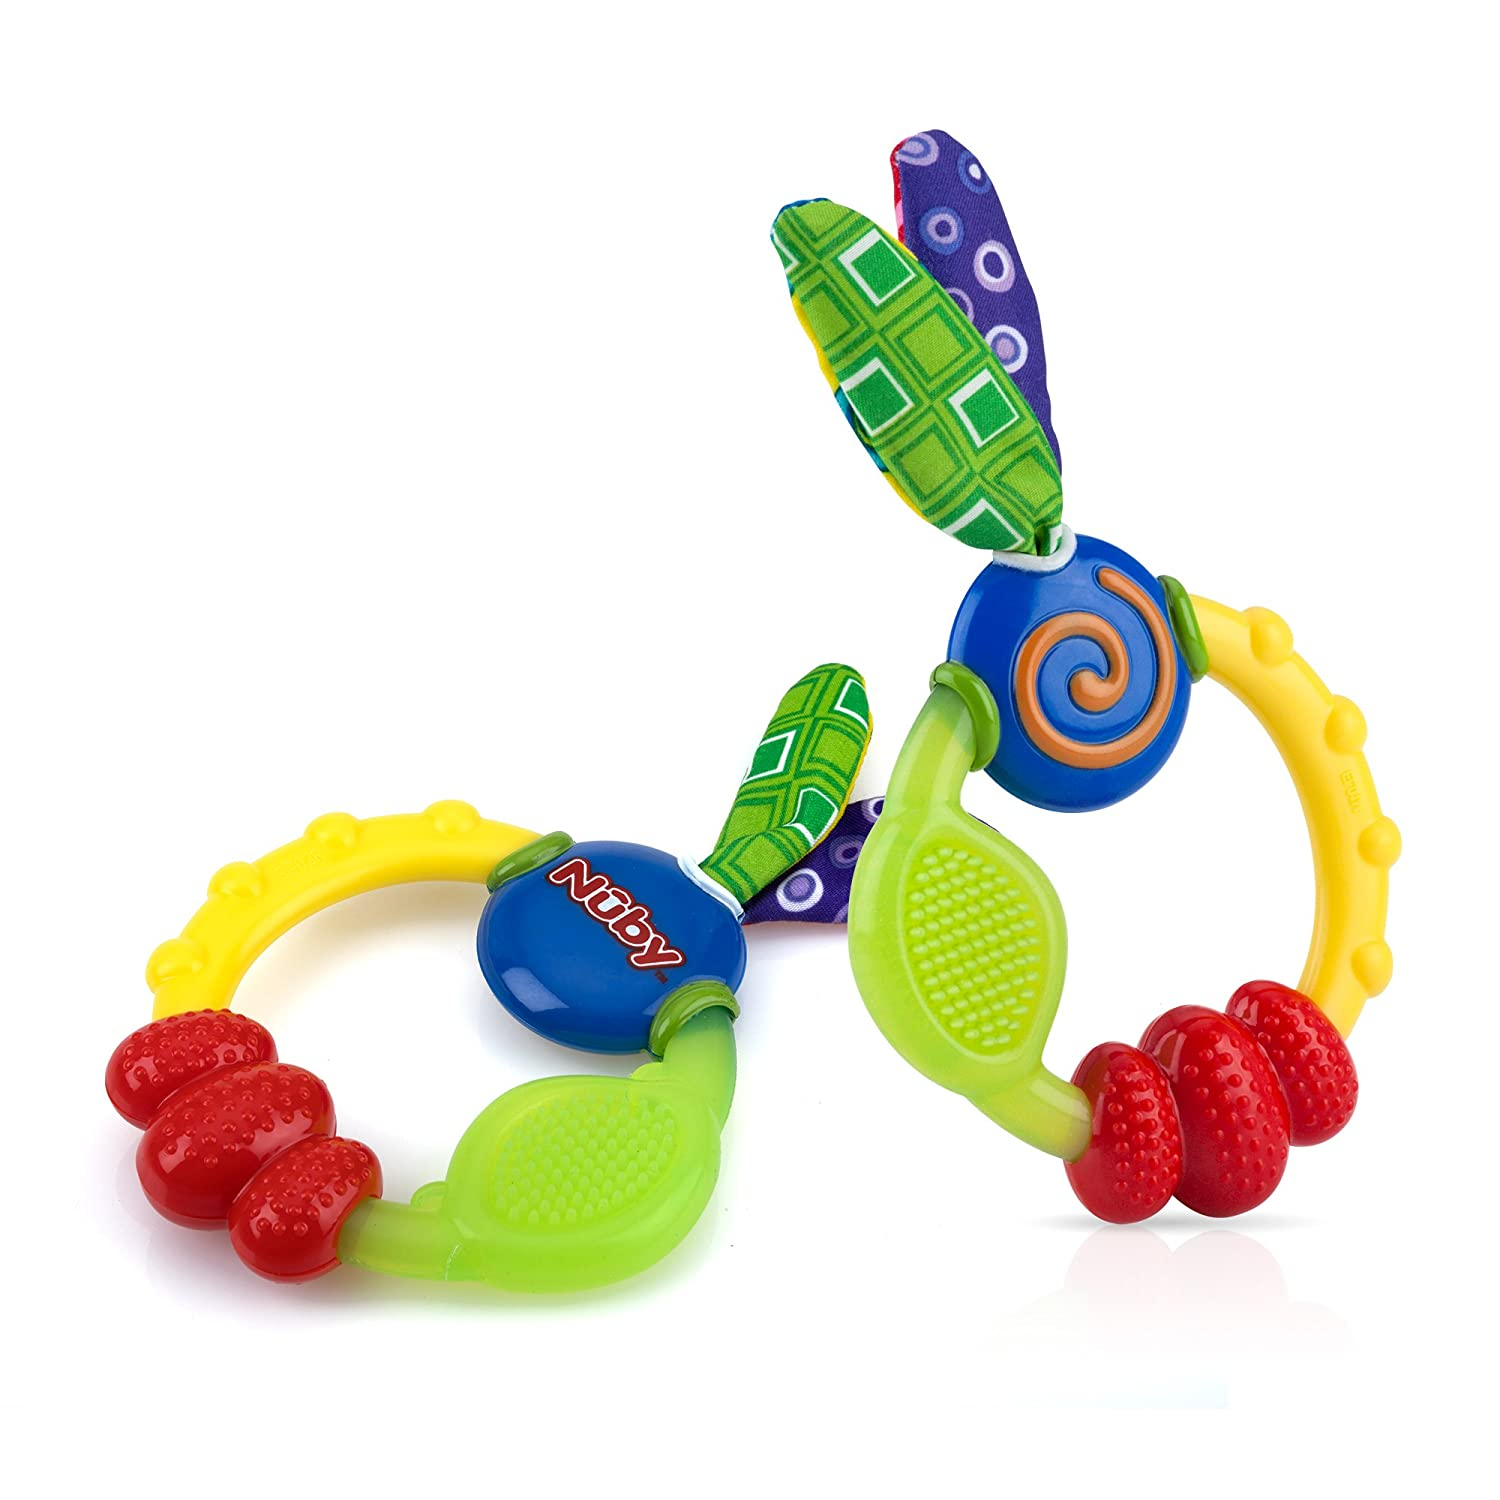 Nuby Wacky Teething Ring (2 Pack)